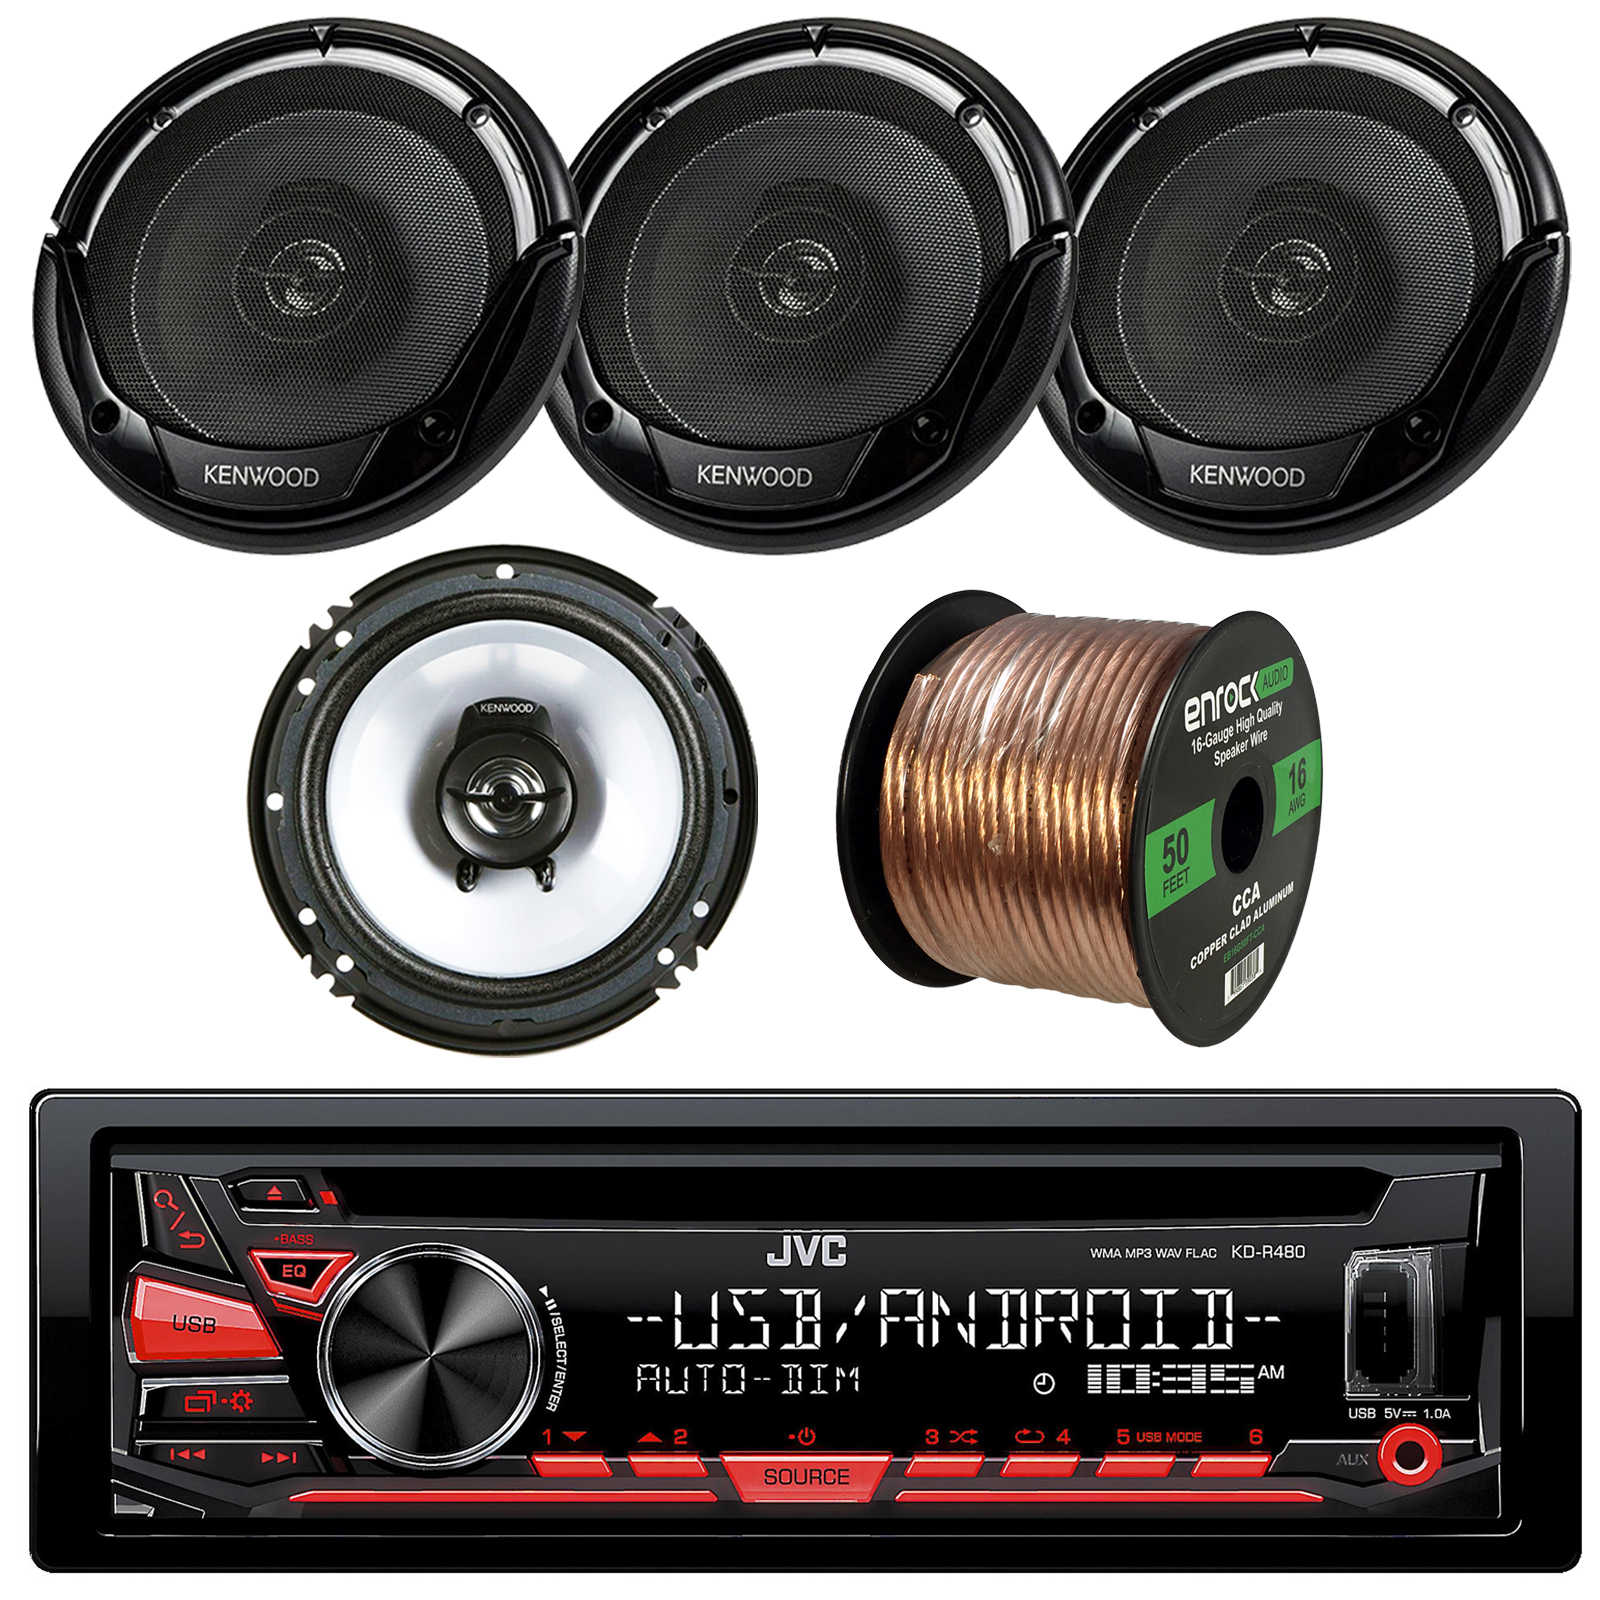 "JVC KD-R480 Single DIN CD/AM/FM/USB/AUX Car Receiver + 2 x Kenwood KFC-1665S 6 1/2"" 2-Way Car Speakers (2 pairs) + Enrock Audio 16-Gauge 50Ft Speaker Wire"